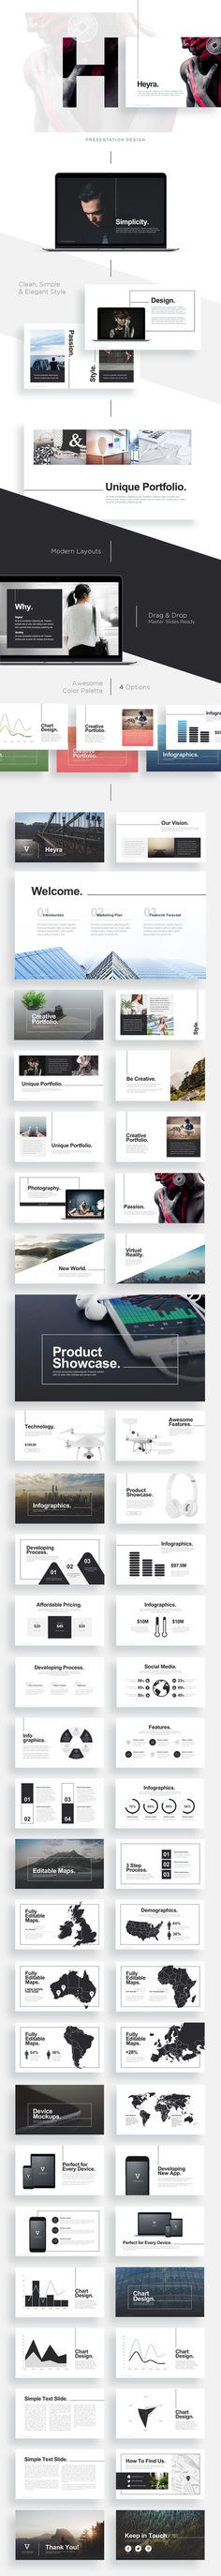 Heyra Presentation Design on Behance